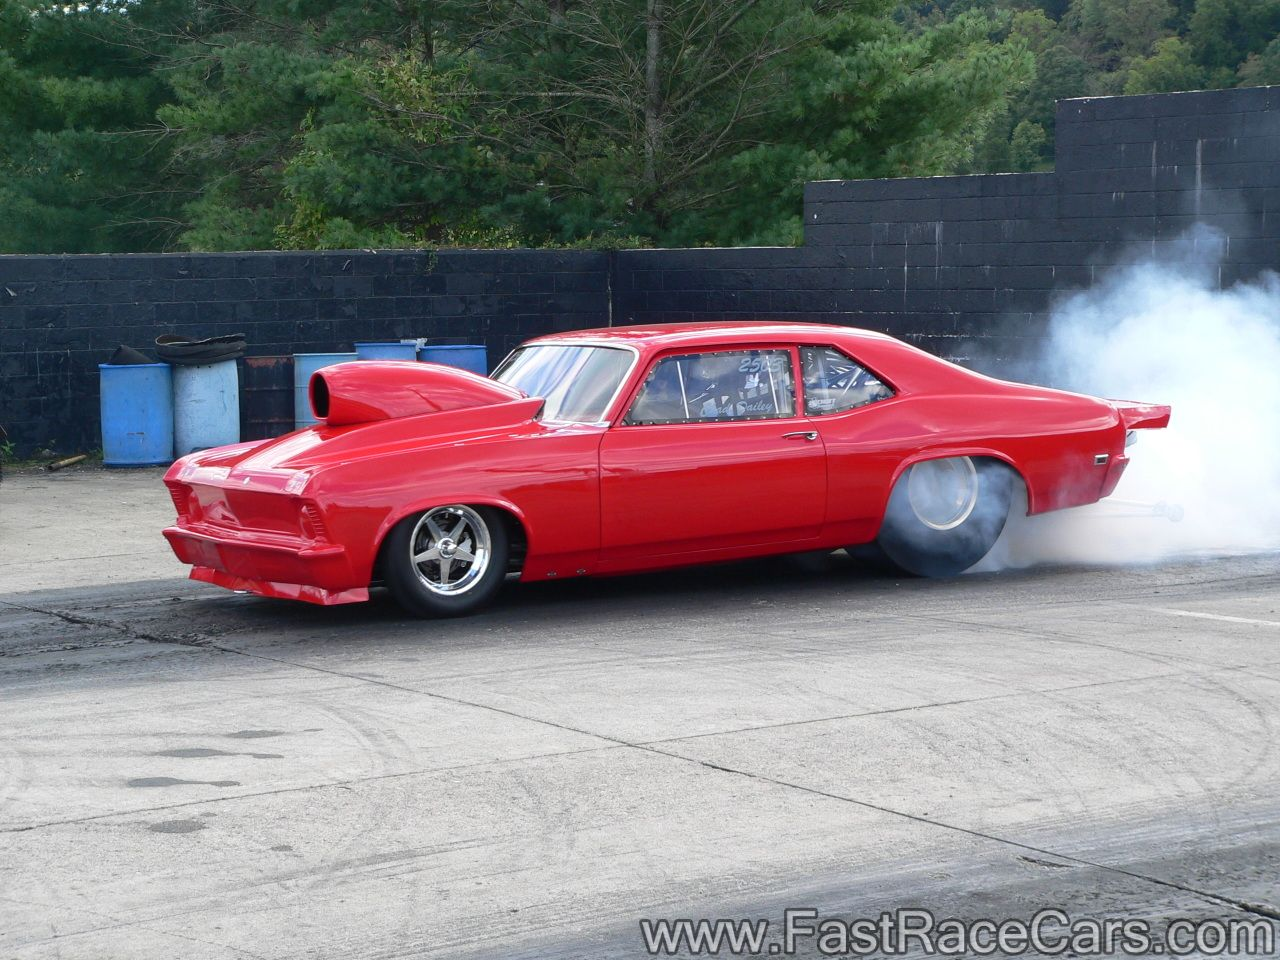 Drag Cars Drag Race Cars Novas Picture Of Red Nova Drag Car Doing Burnout Drag Racing Cars Drag Cars Chevy Muscle Cars